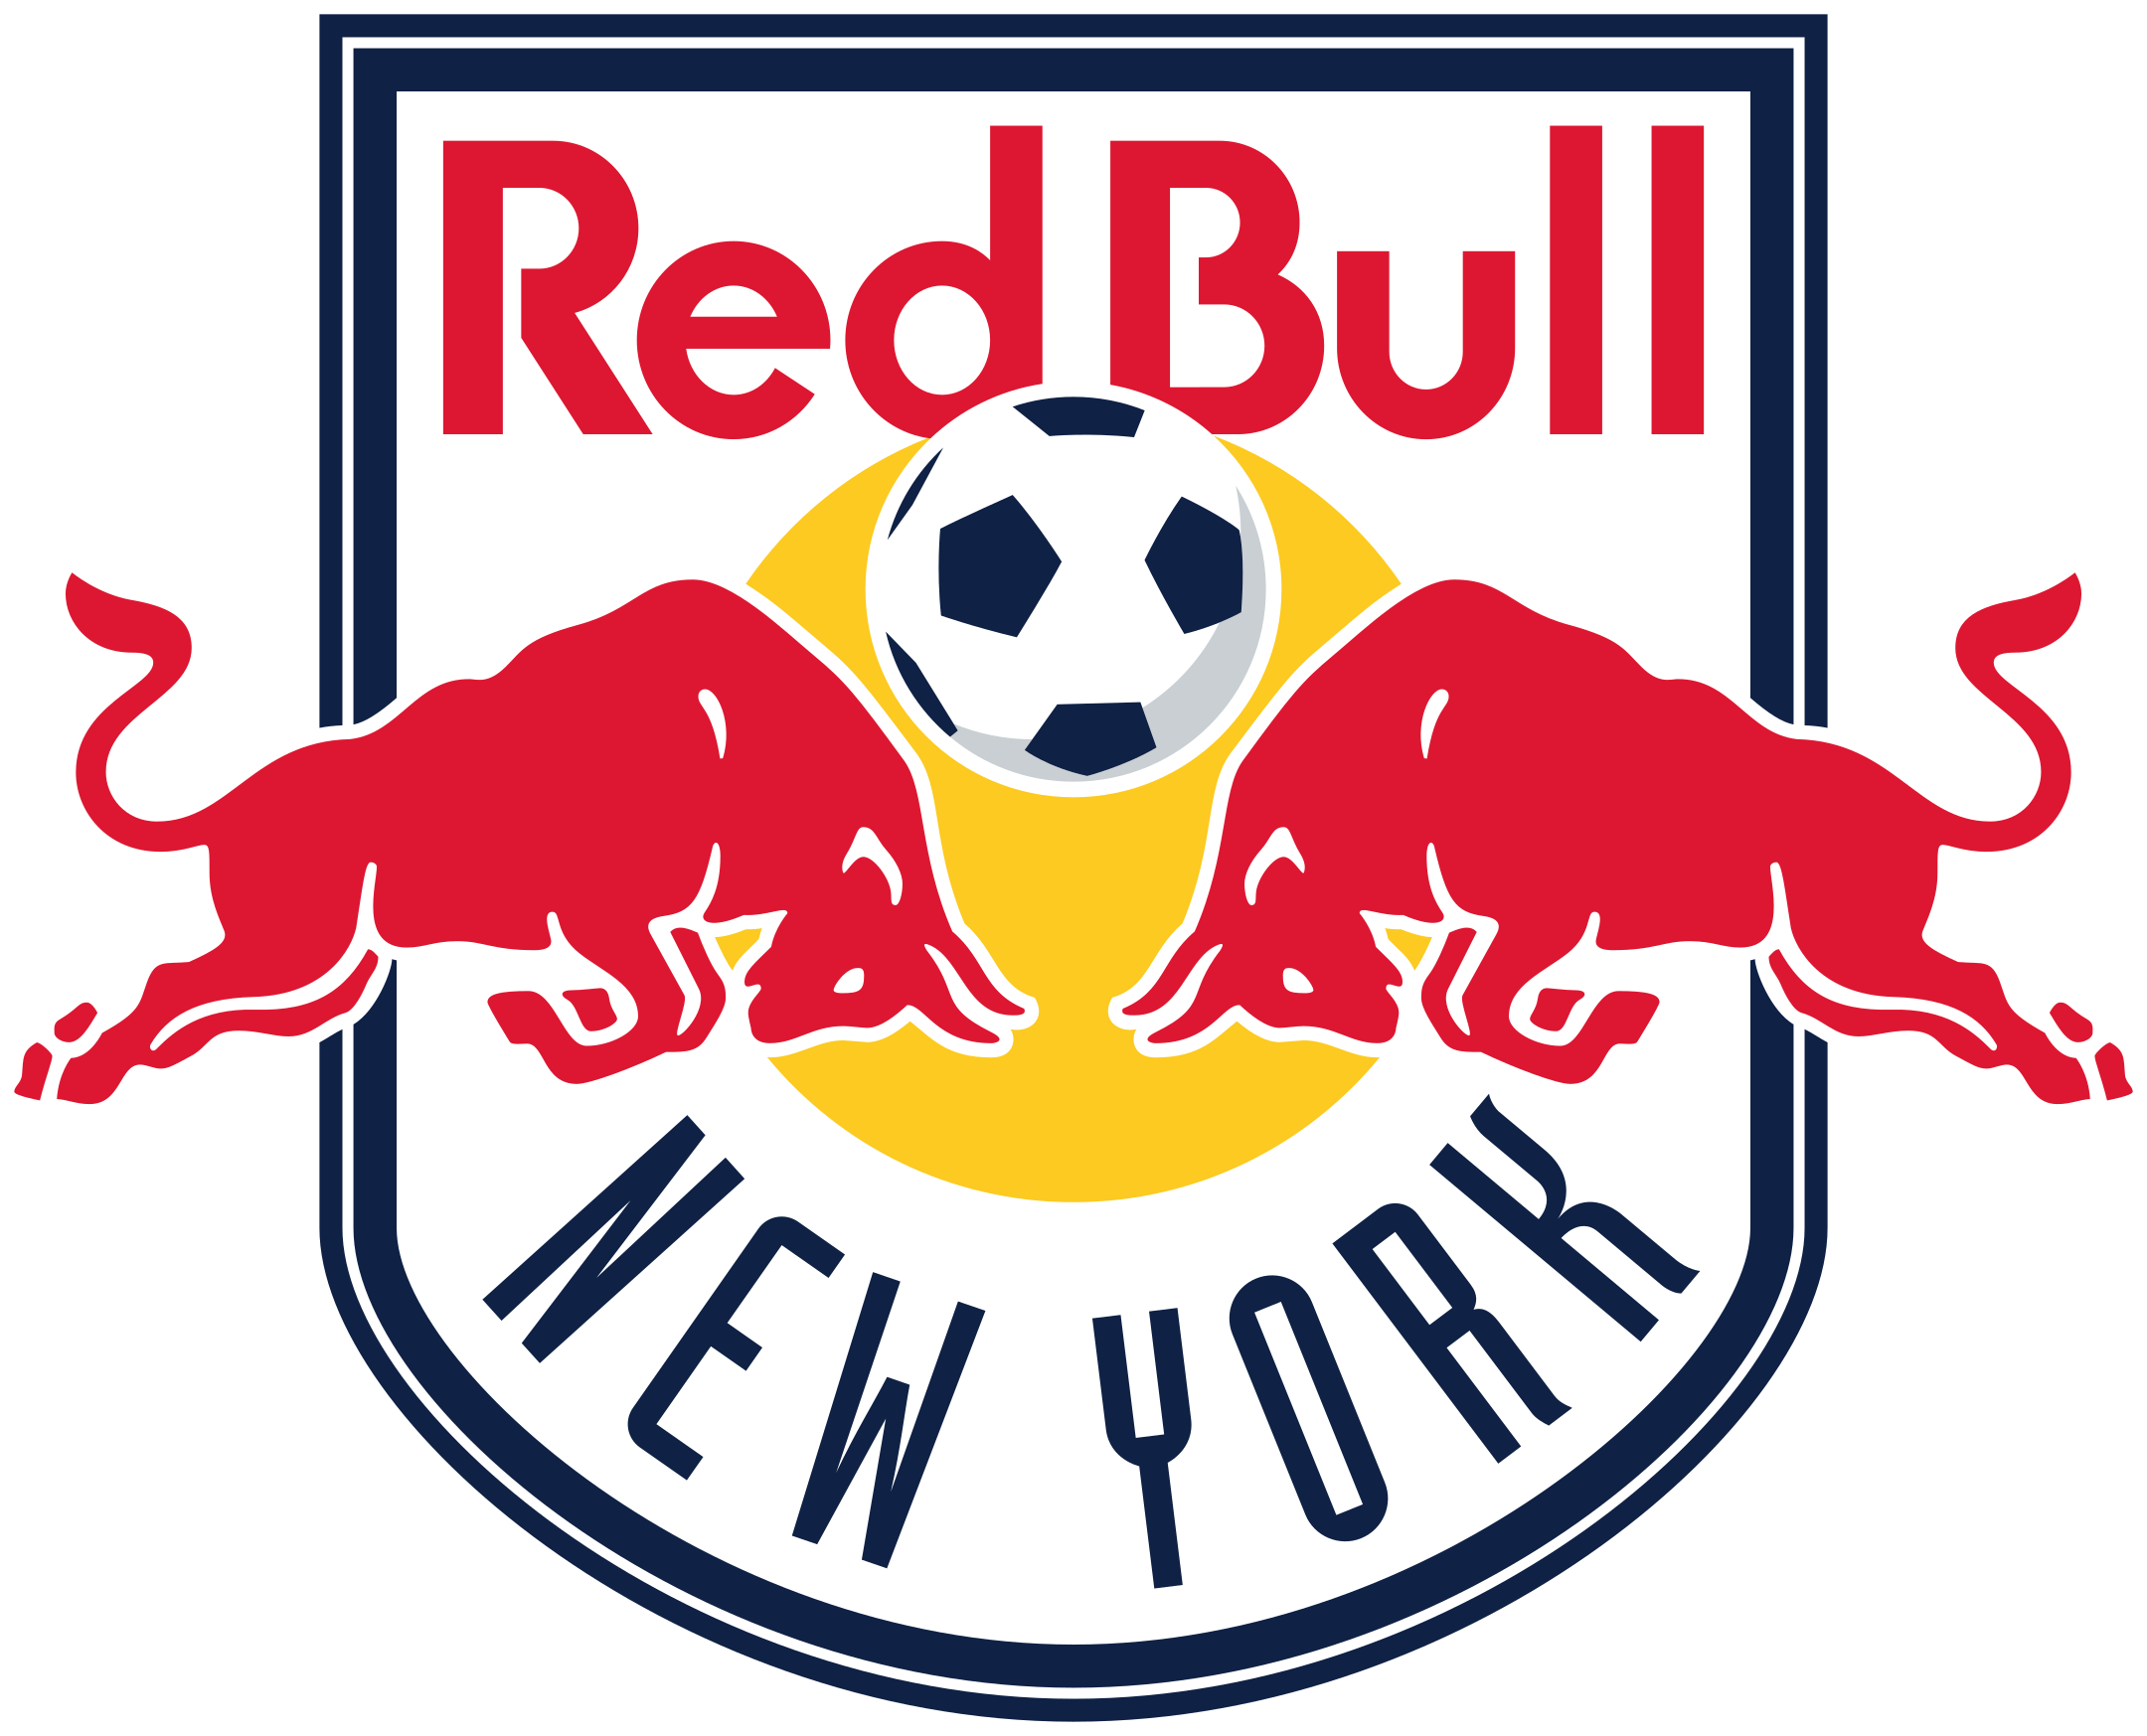 new york red bulls logo 1 - New York Red Bulls Logo